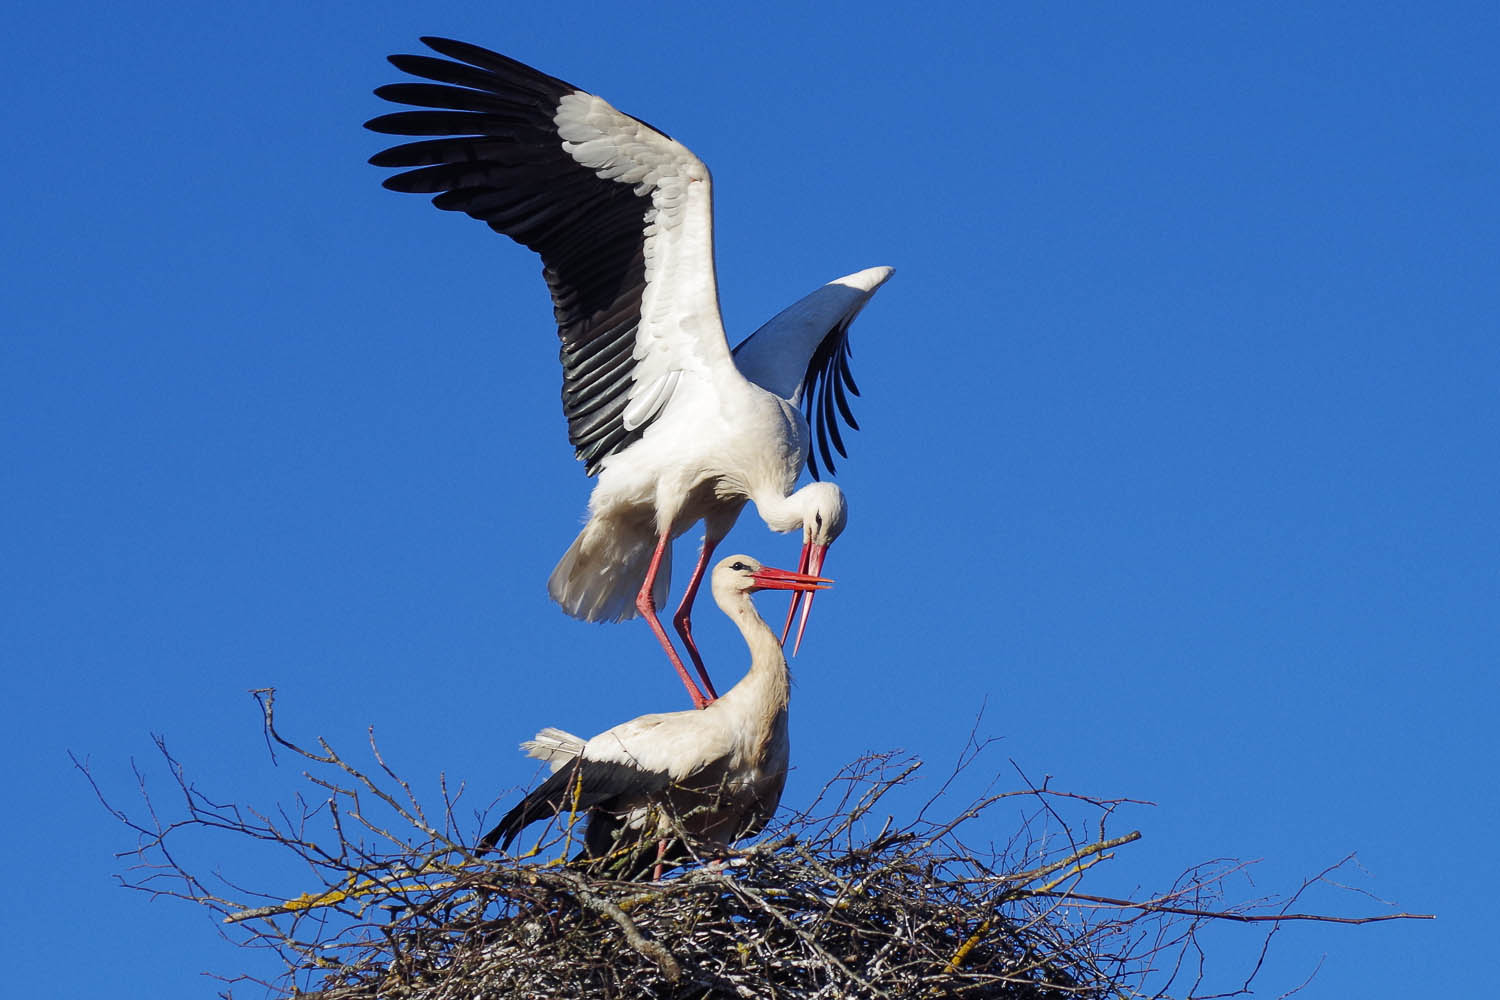 Storks are amongst the many water birds that migrate to Rameswaram. Image: © Kitijak